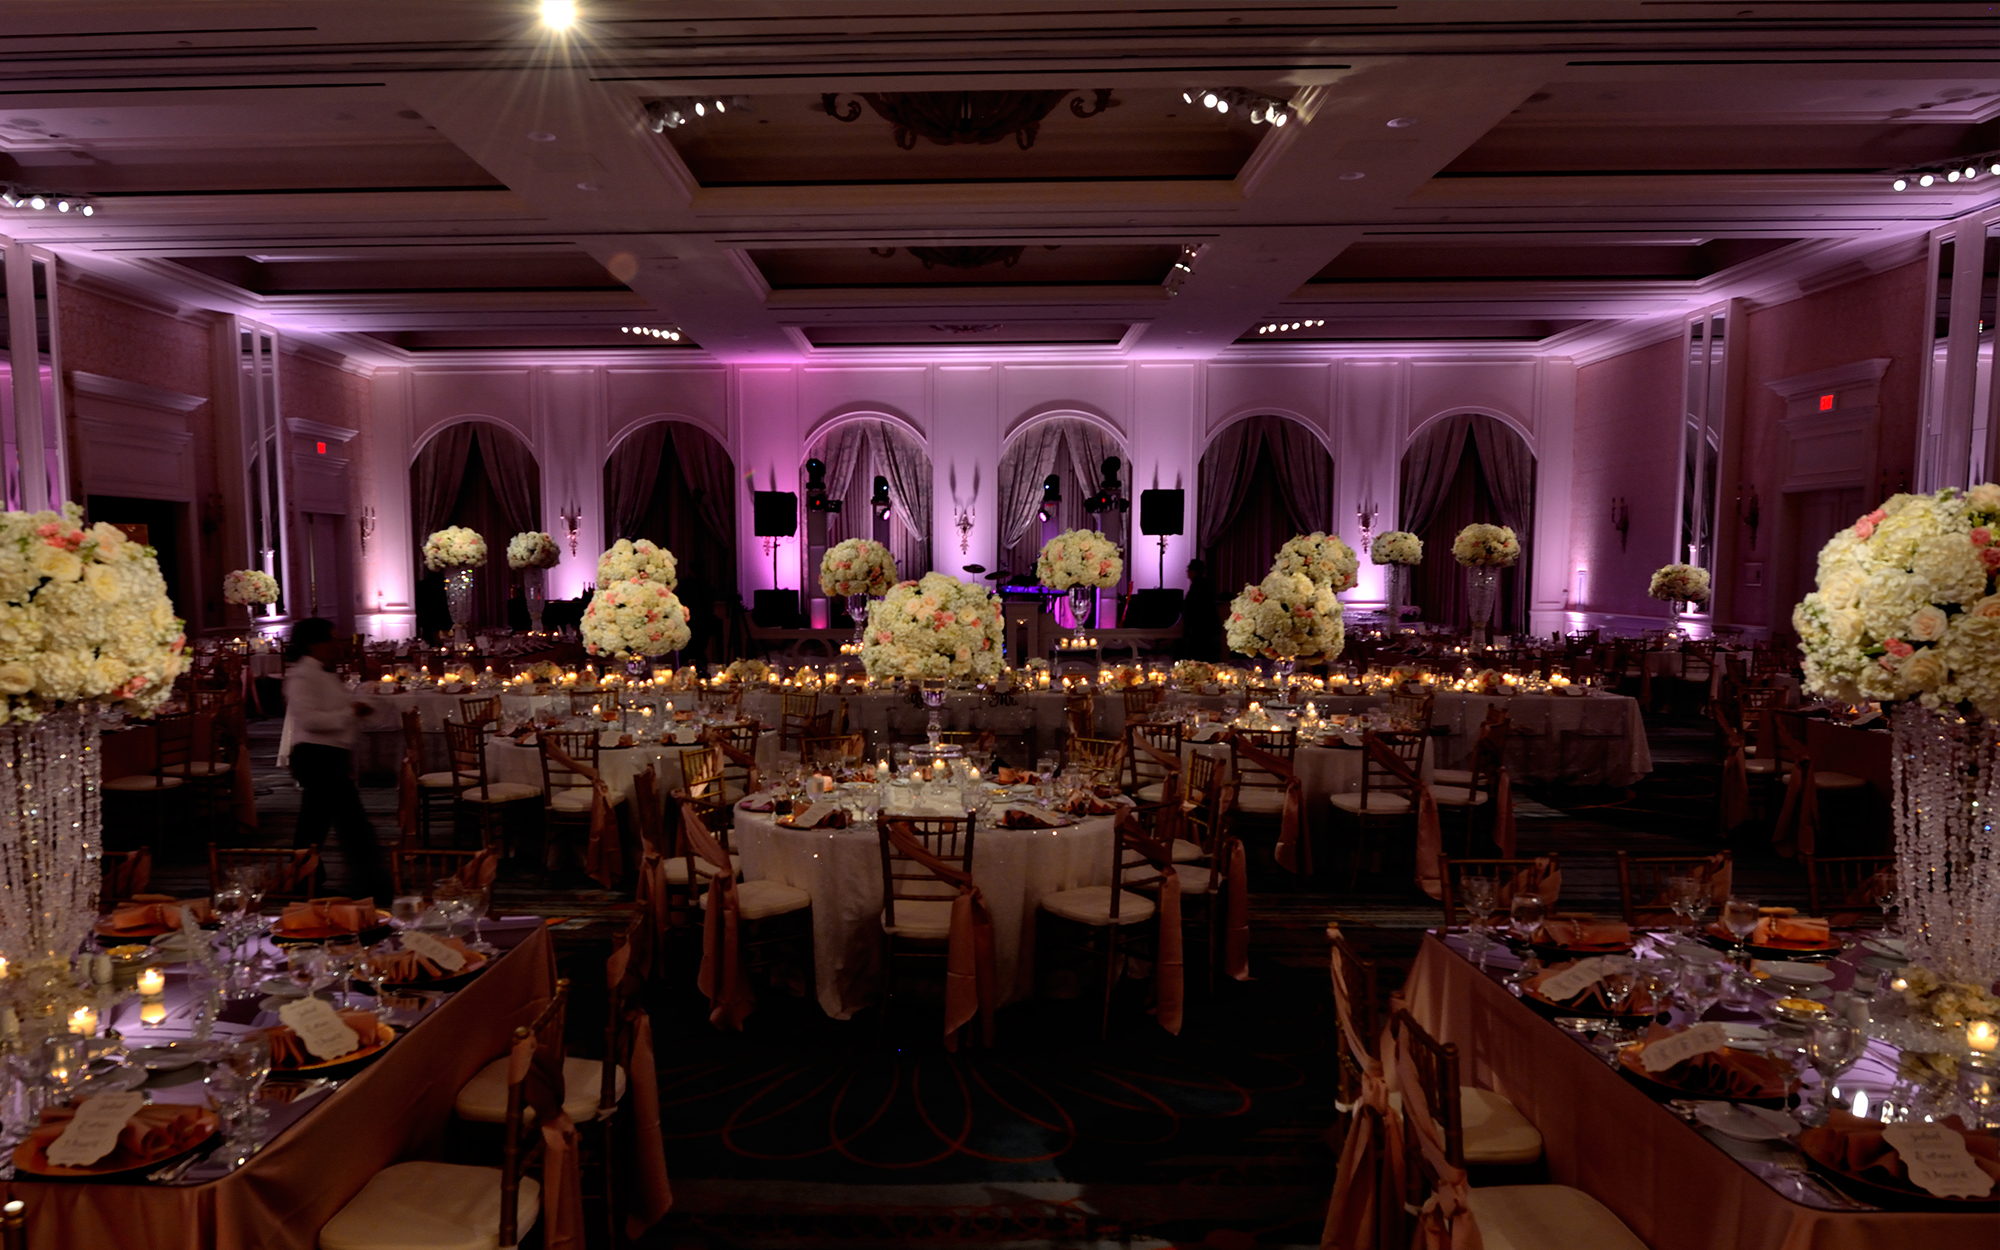 Decor Lighting at The Four Seasons Las Colinas